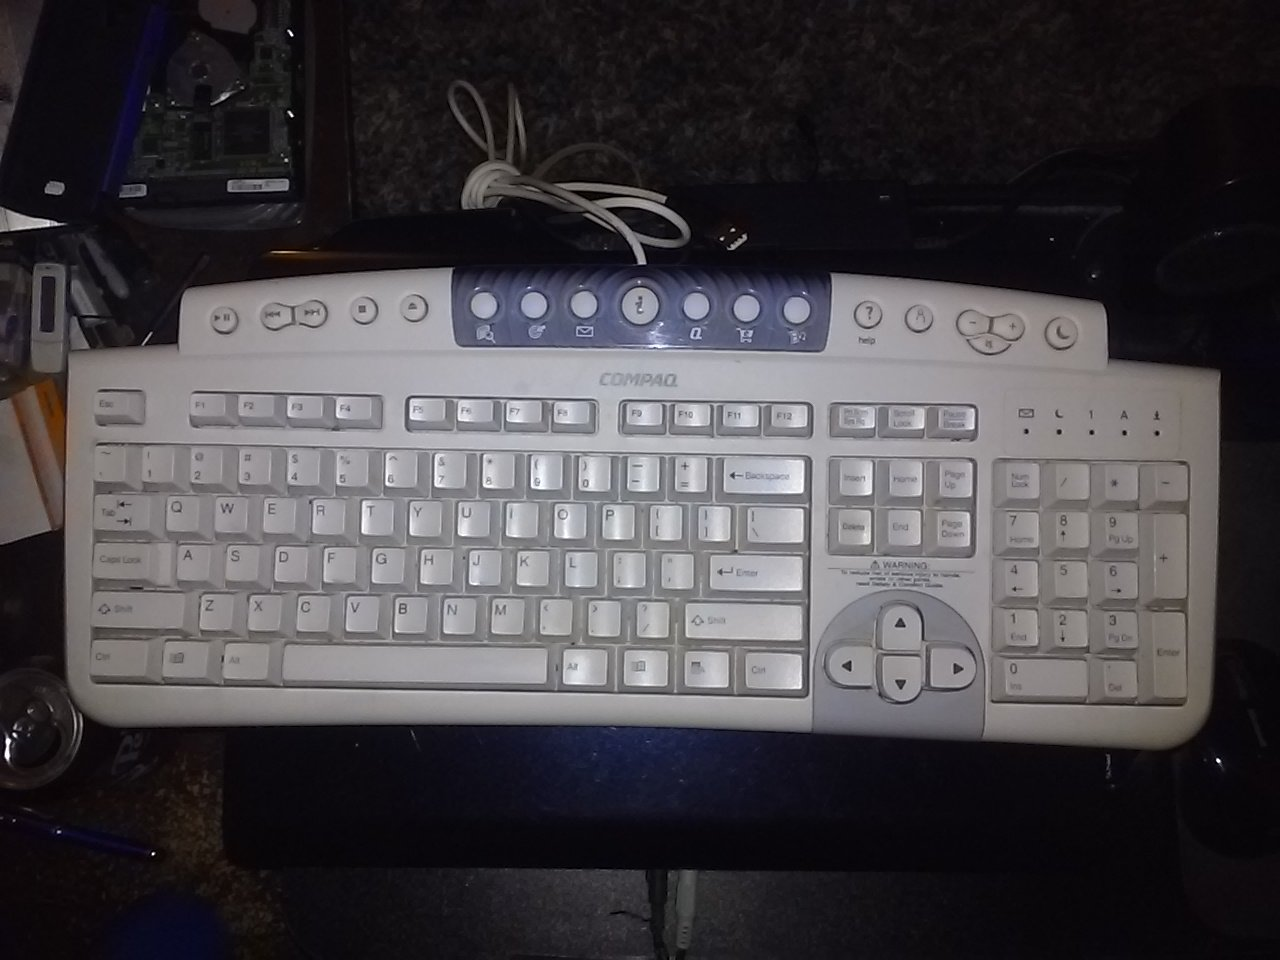 COMPAQ KEYBOARD KU 9978 DRIVER FOR WINDOWS 10